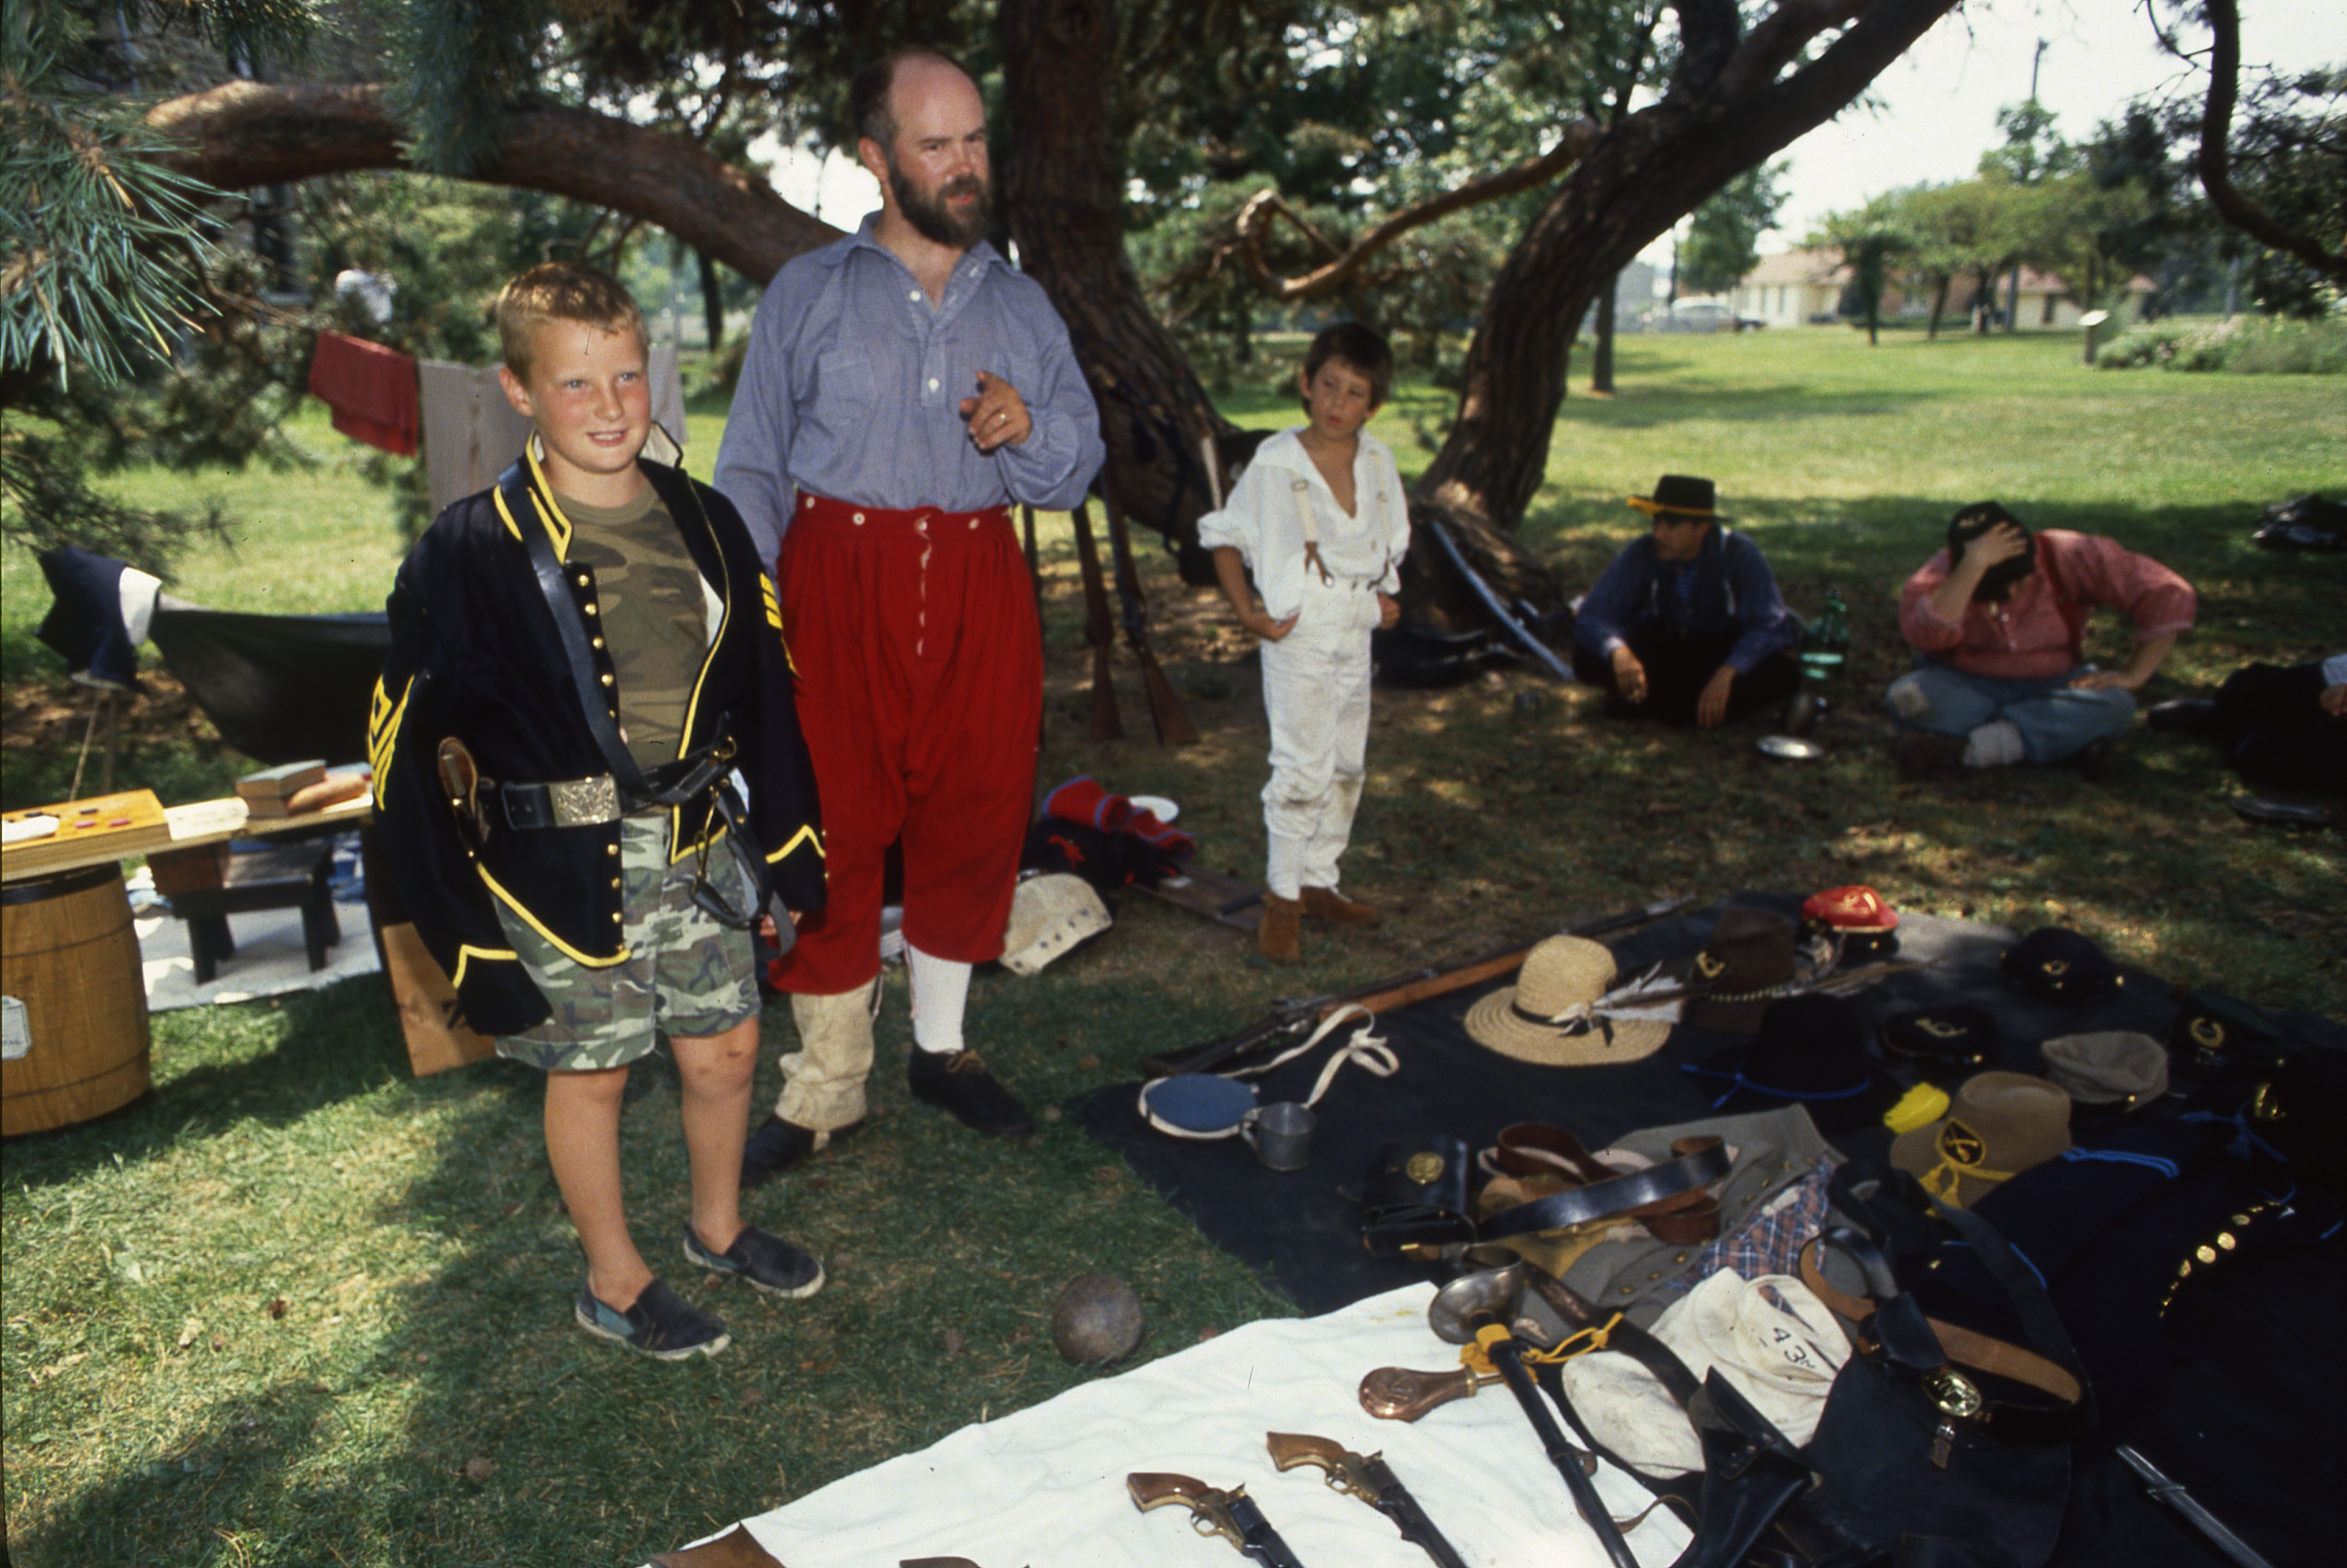 Civil War Era Re-enactment Participants & Their Gear At Cobblestone Farm, July 28, 1990 image